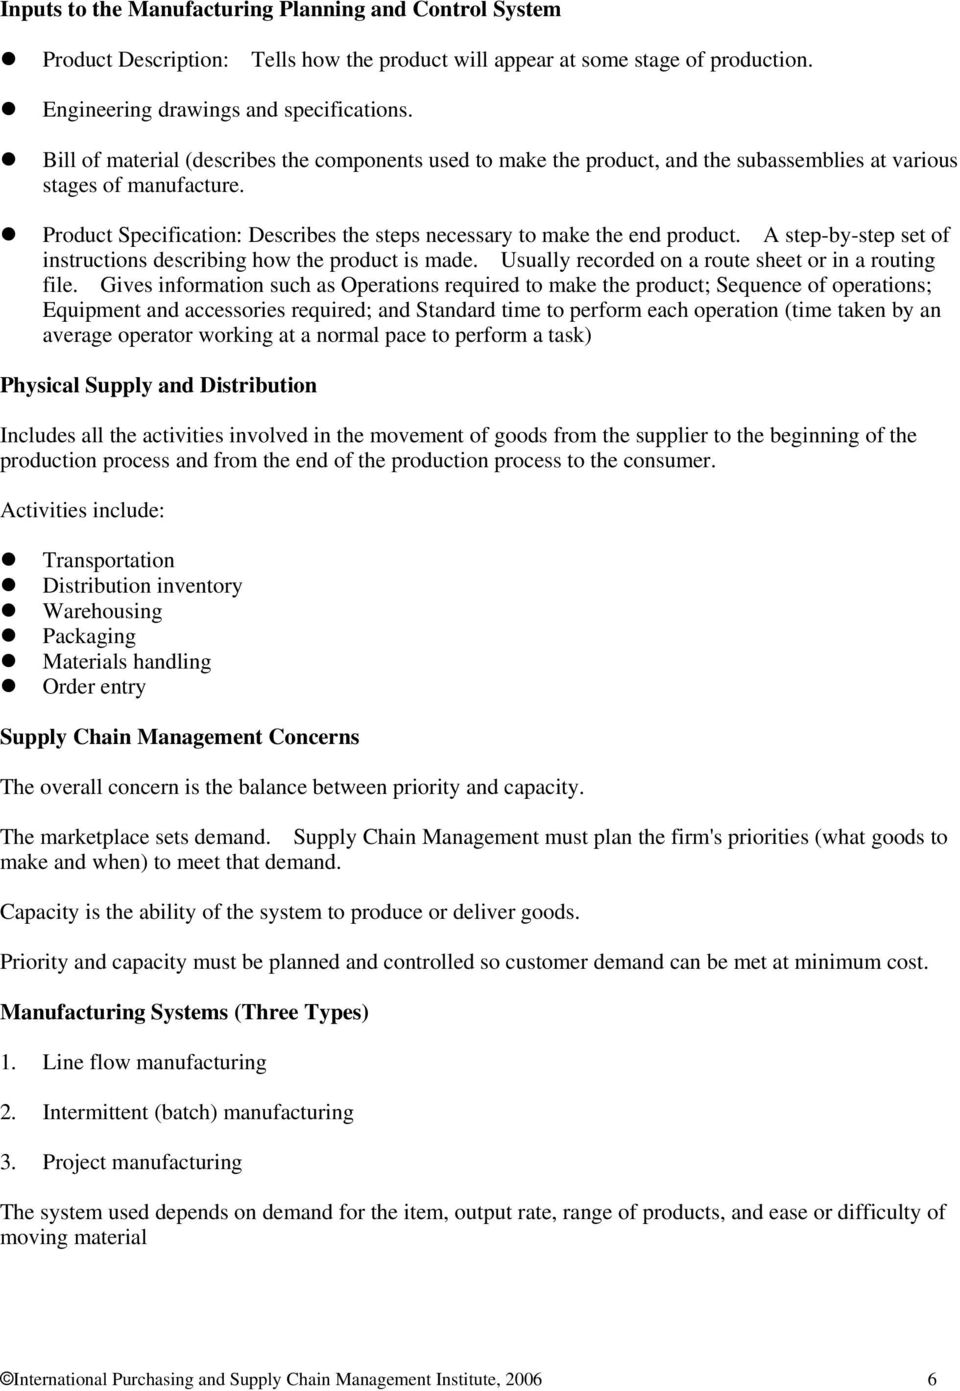 Product Specification: Describes the steps necessary to make the end product. A step-by-step set of instructions describing how the product is made.